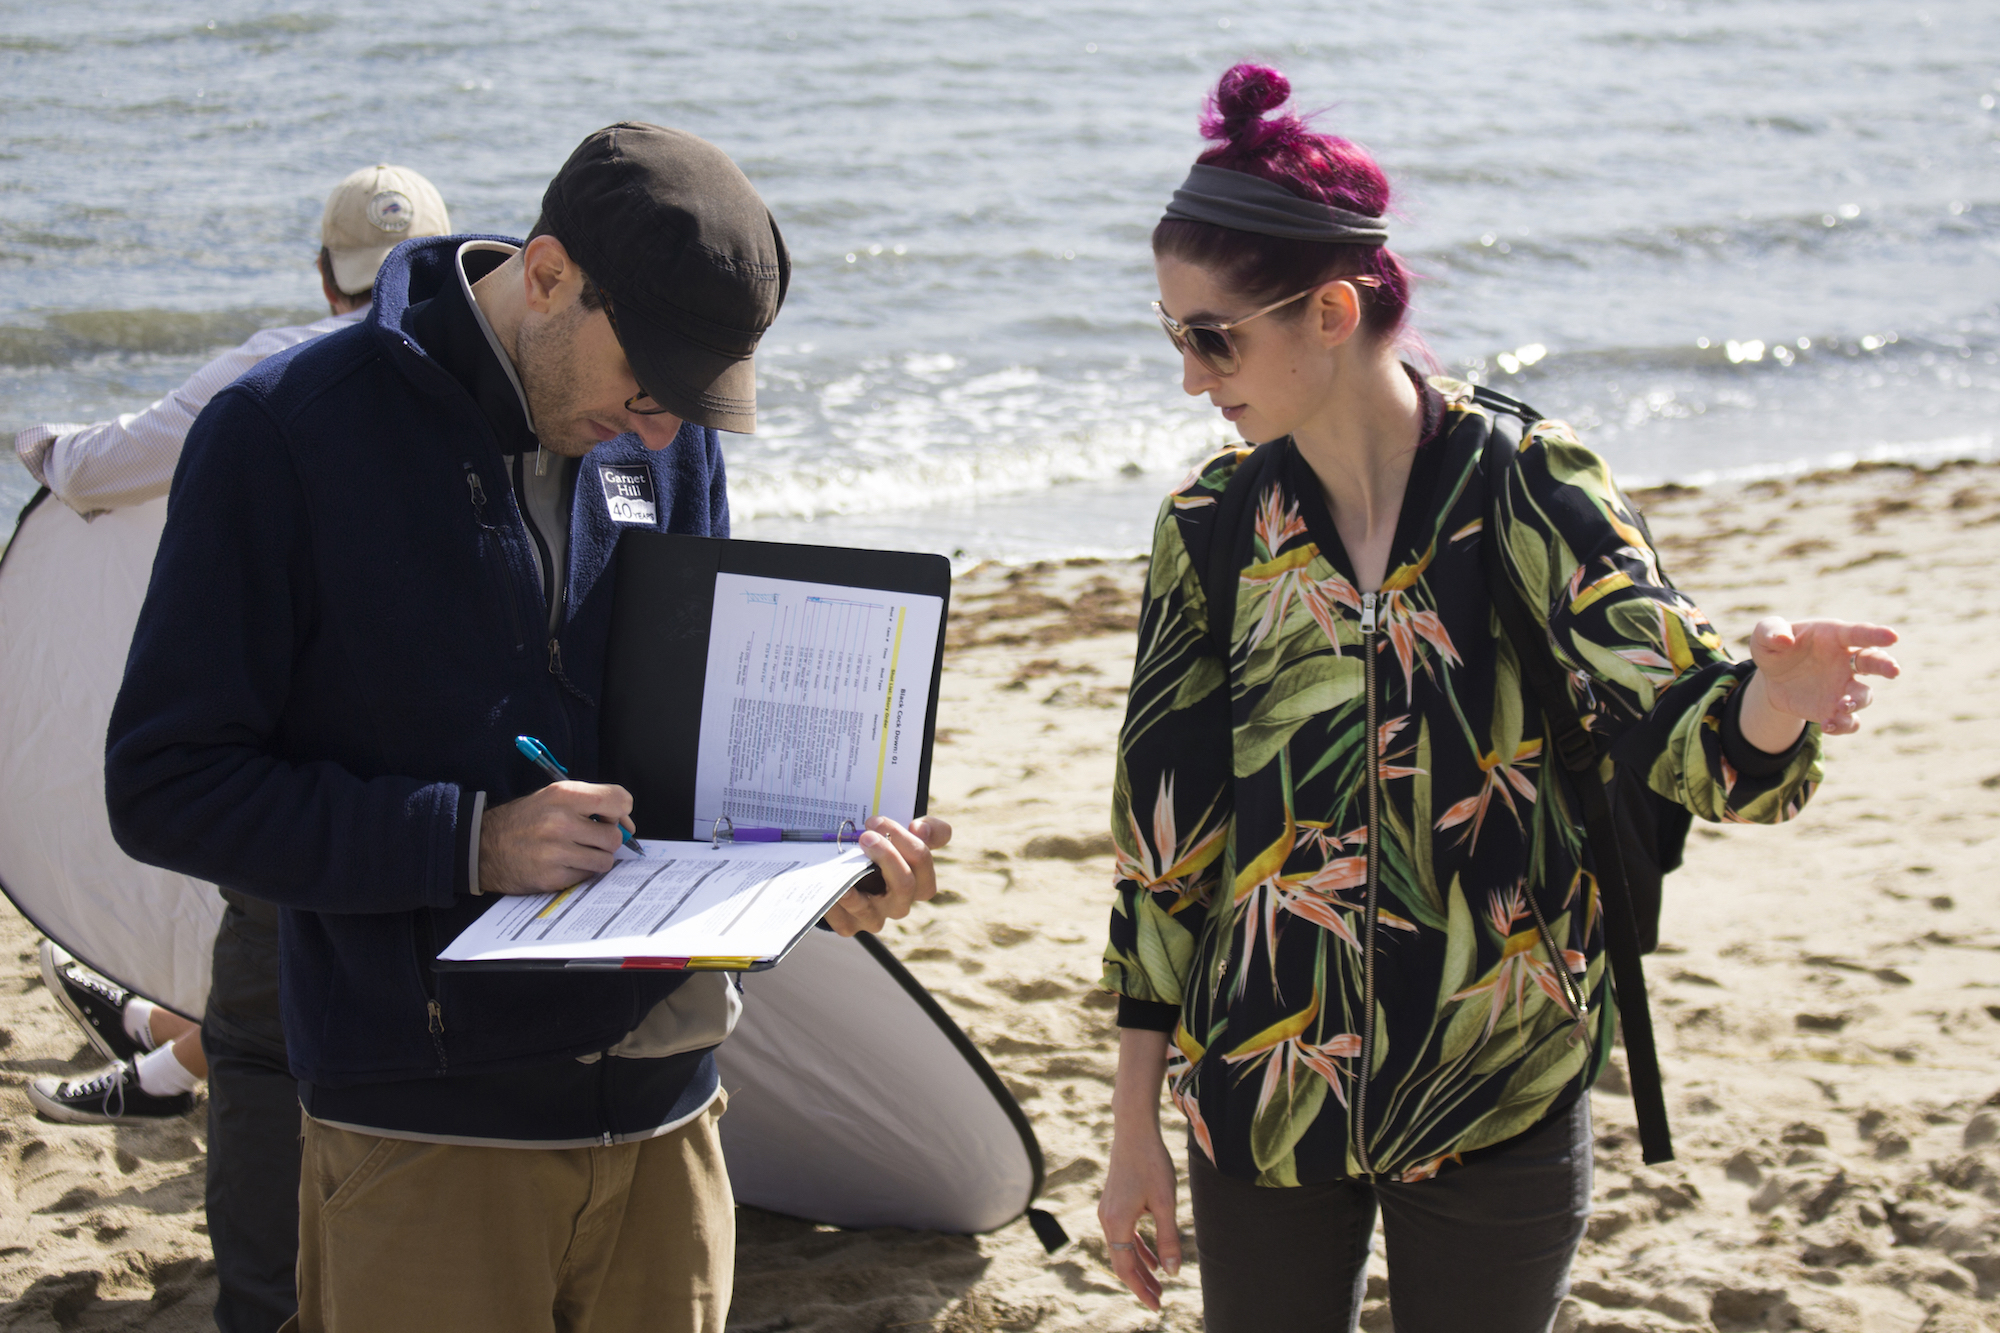 Assistant Director Adrian Atwood with Writer, Producer/Director Geena Matuson on the set of Matuson's production of 'Fauxmercials' beach ads, September 2016.